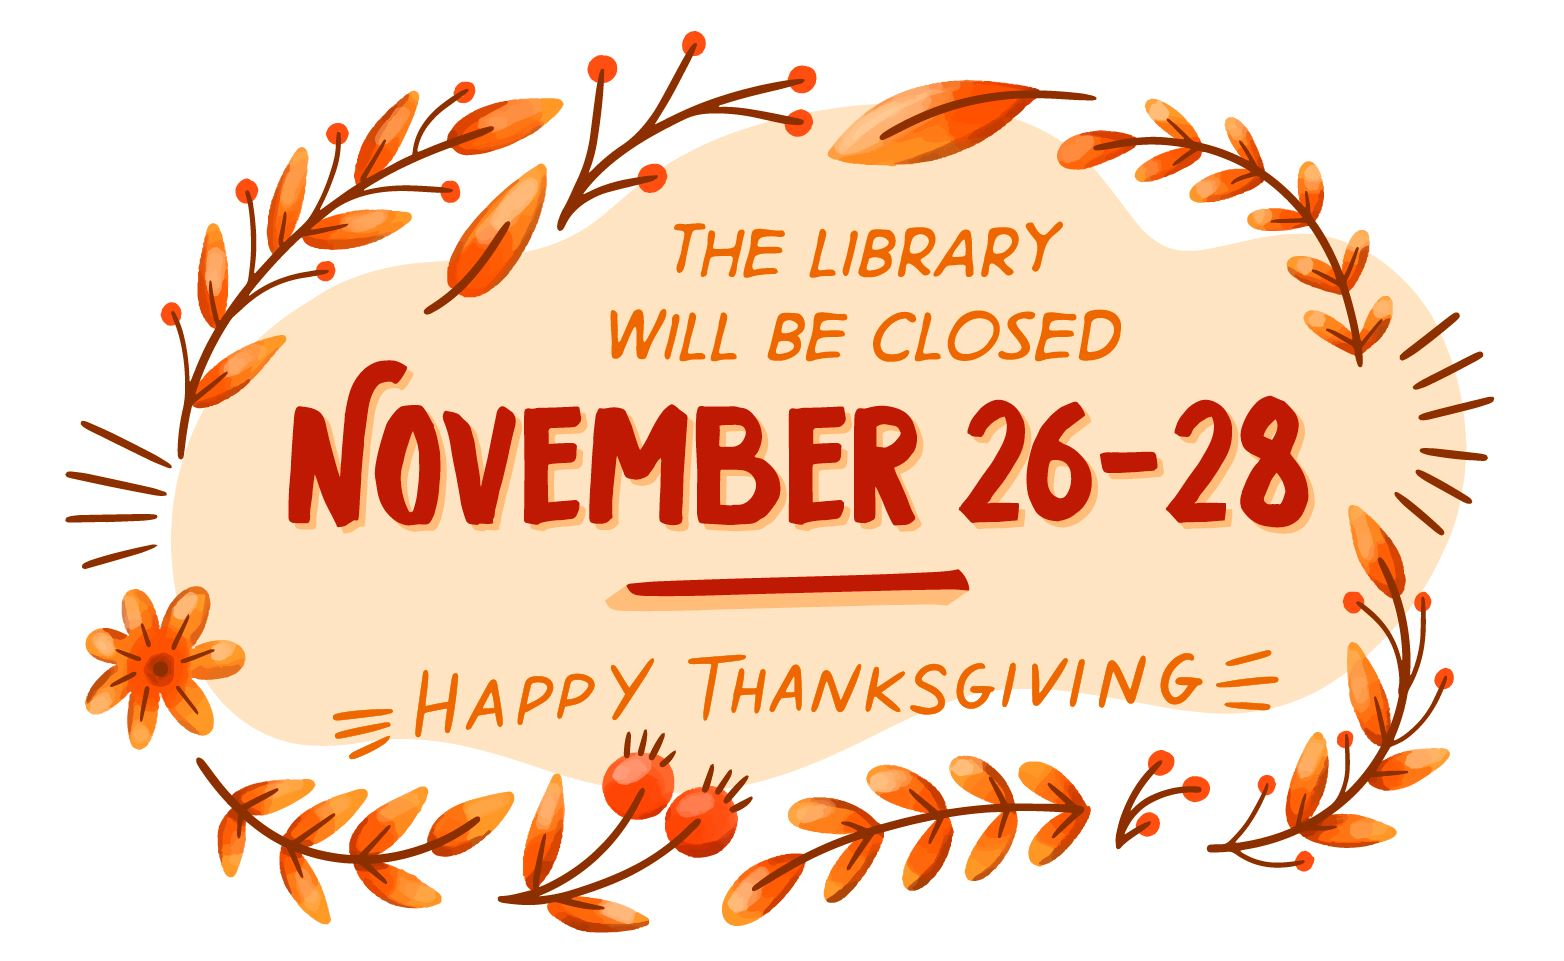 LibraryClosedThanksgiving